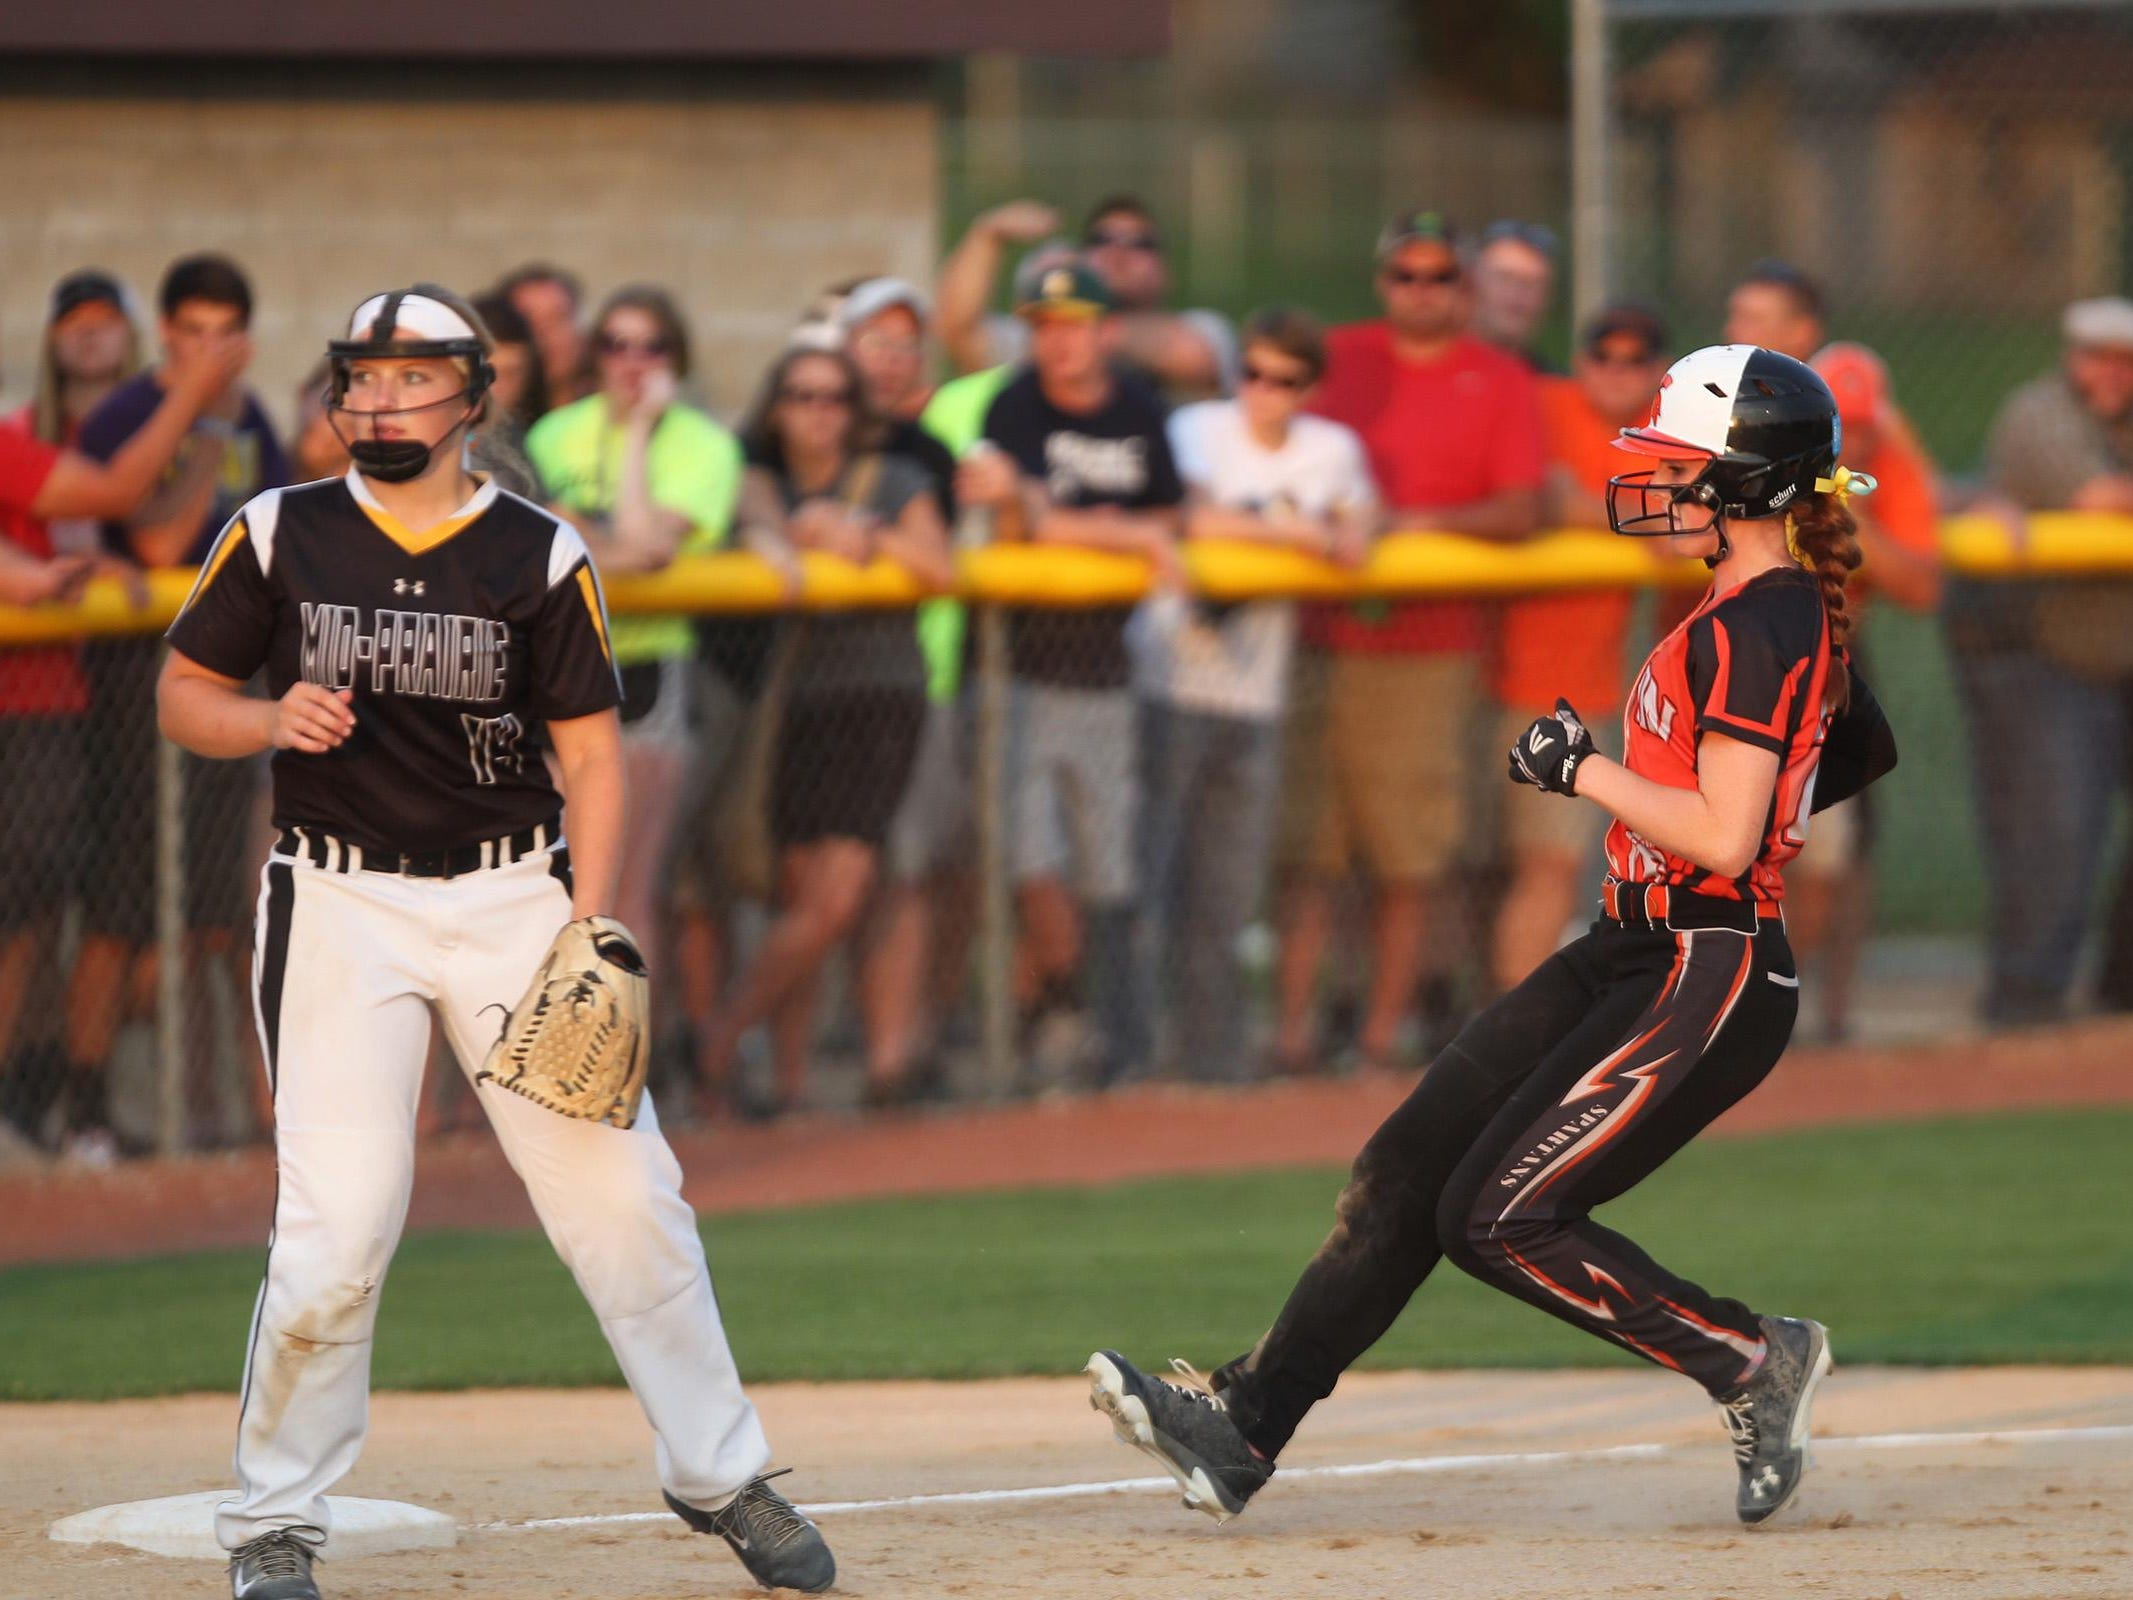 Solon's Jess Heick makes her wait to third base during the Spartans' regional game against Mid-Prairie at Solon on Friday, July 10, 2015. David Scrivner / Iowa City Press-Citizen